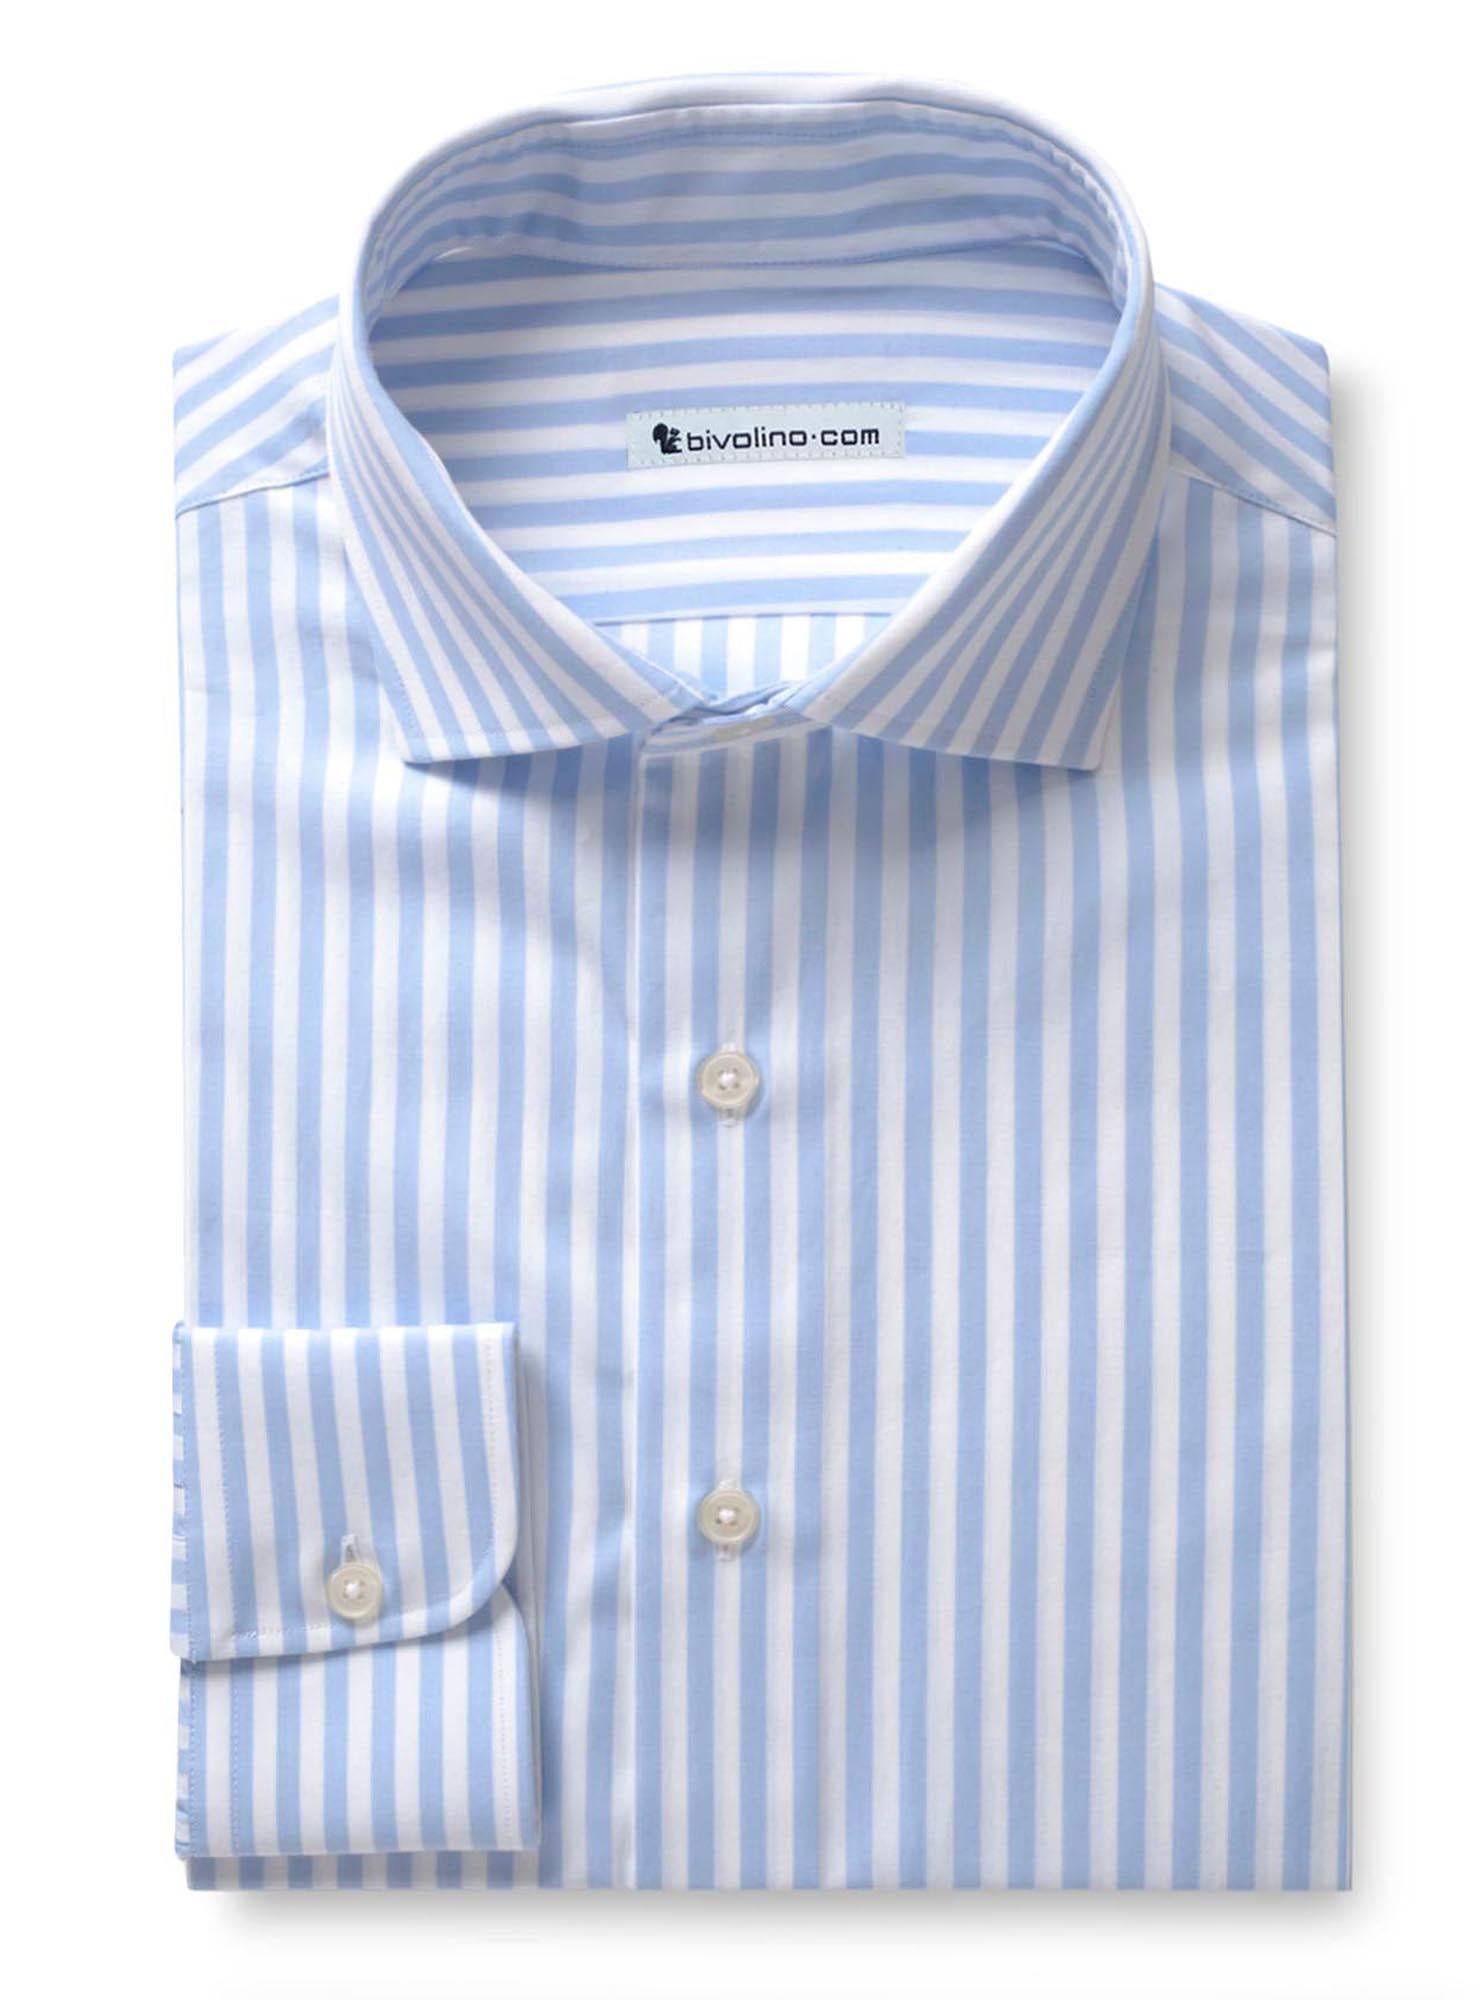 PIRIRO - Light blue striped men's shirt - WINDY 2